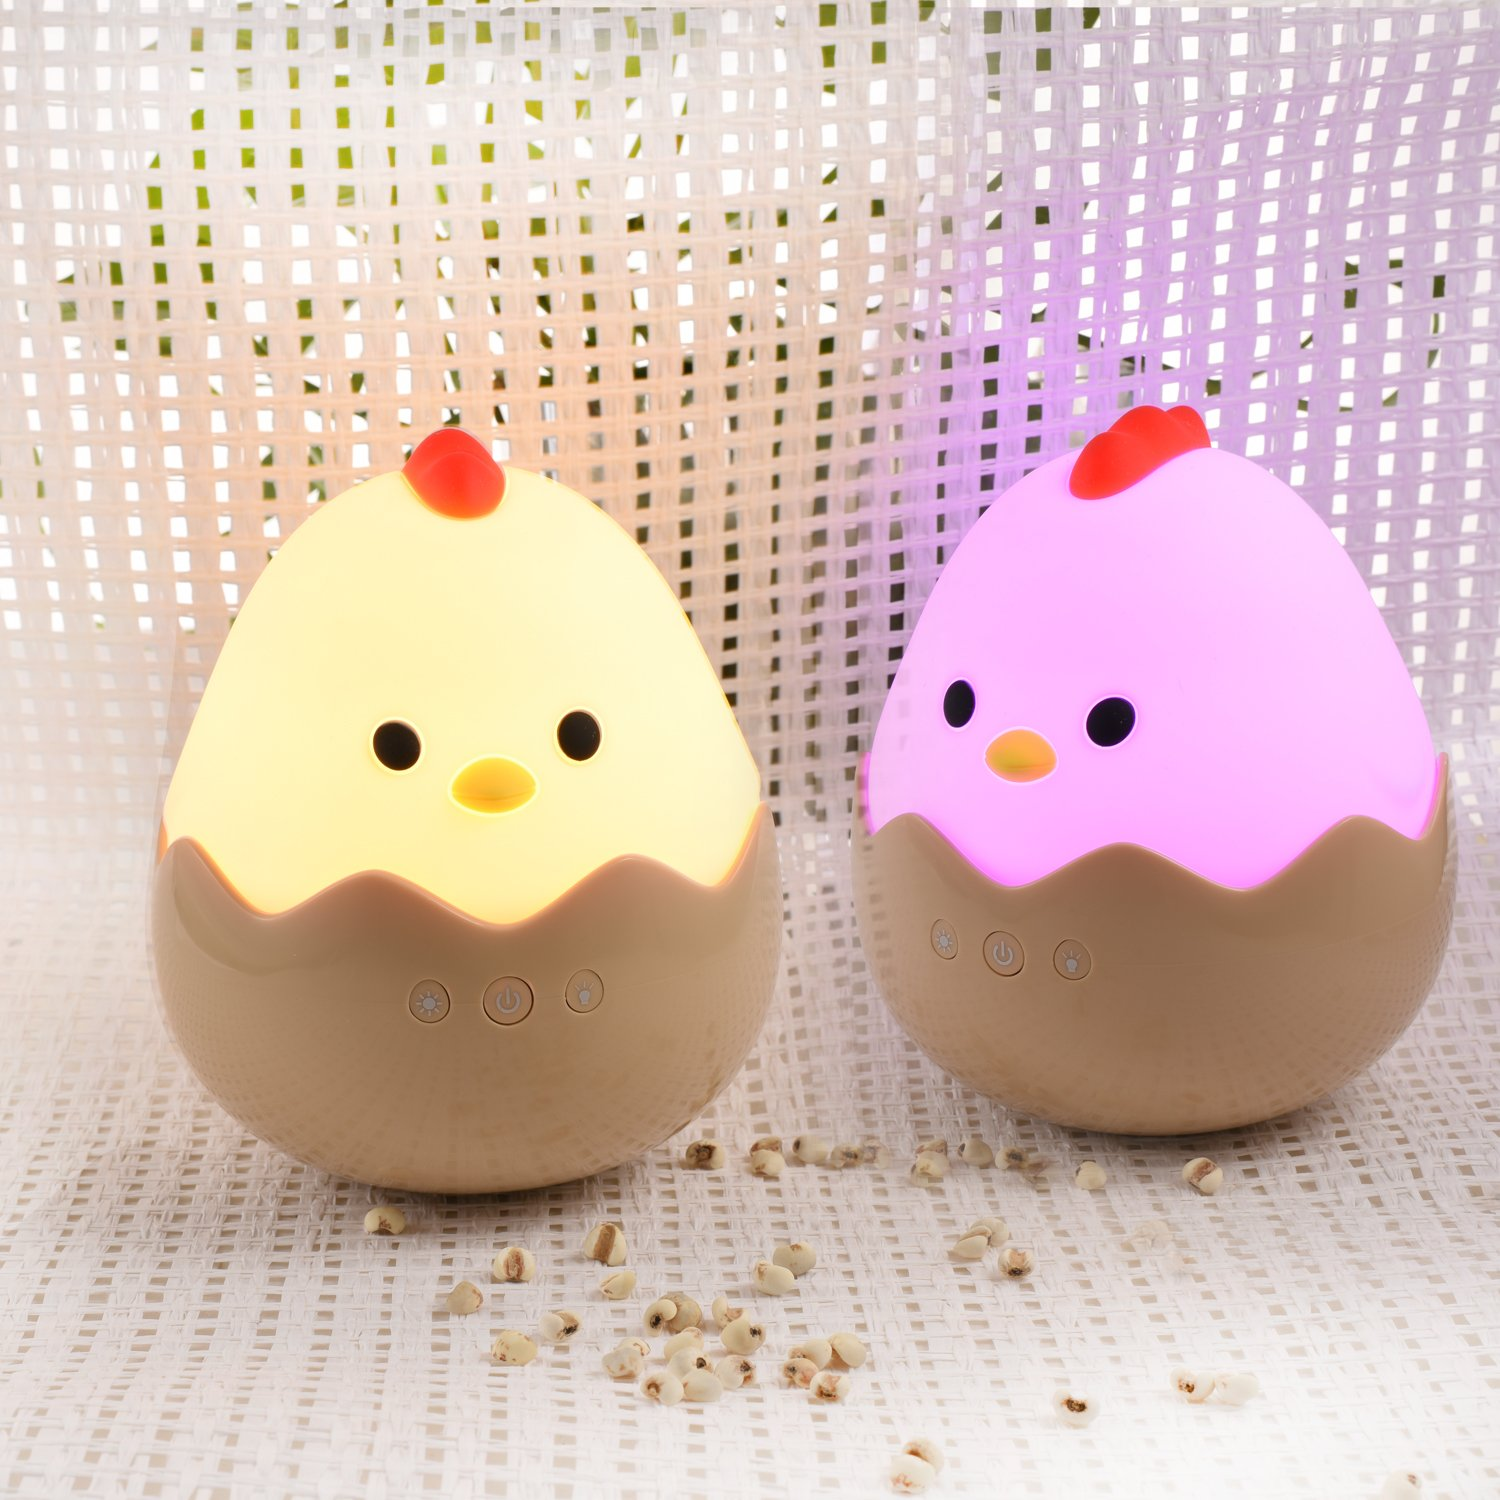 Touch Control YHMAE Cute Creative Chick Night Light Rechargeable Chick Shape Top Control Lamp for Girl Lady Kid Baby Bedroom and Nursery